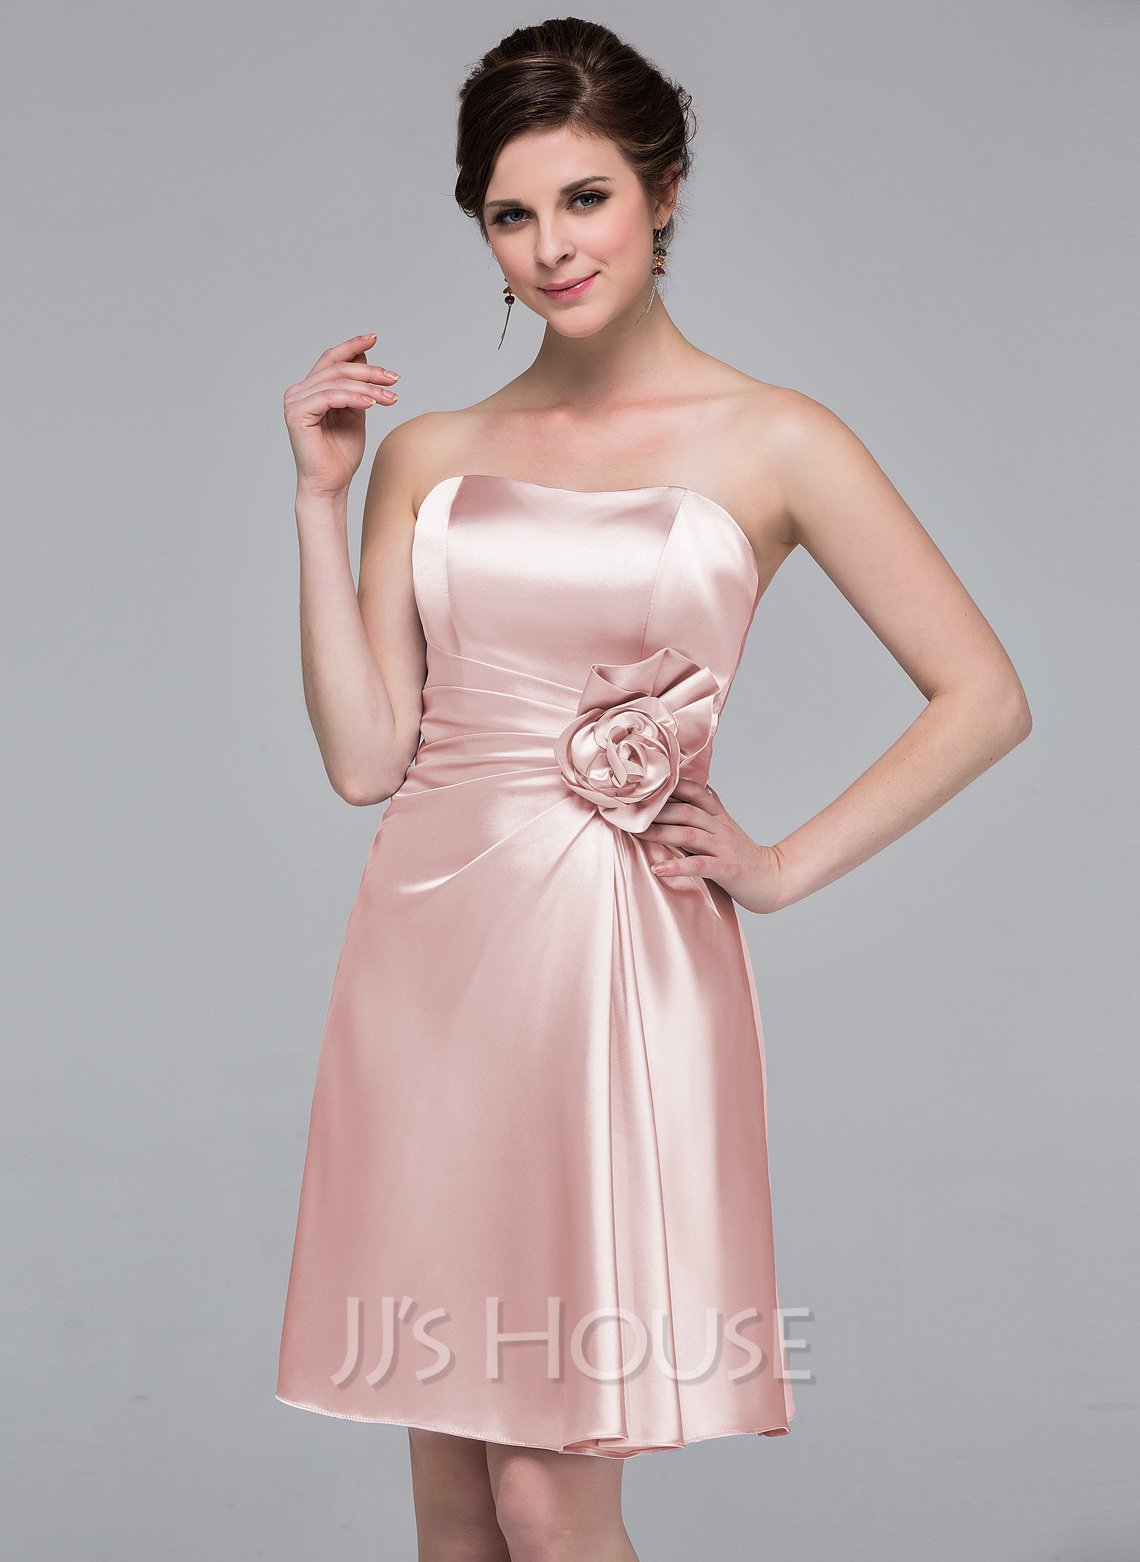 98d610ec323 Sheath/Column Sweetheart Knee-Length Charmeuse Bridesmaid Dress With  Flower(s). Loading zoom